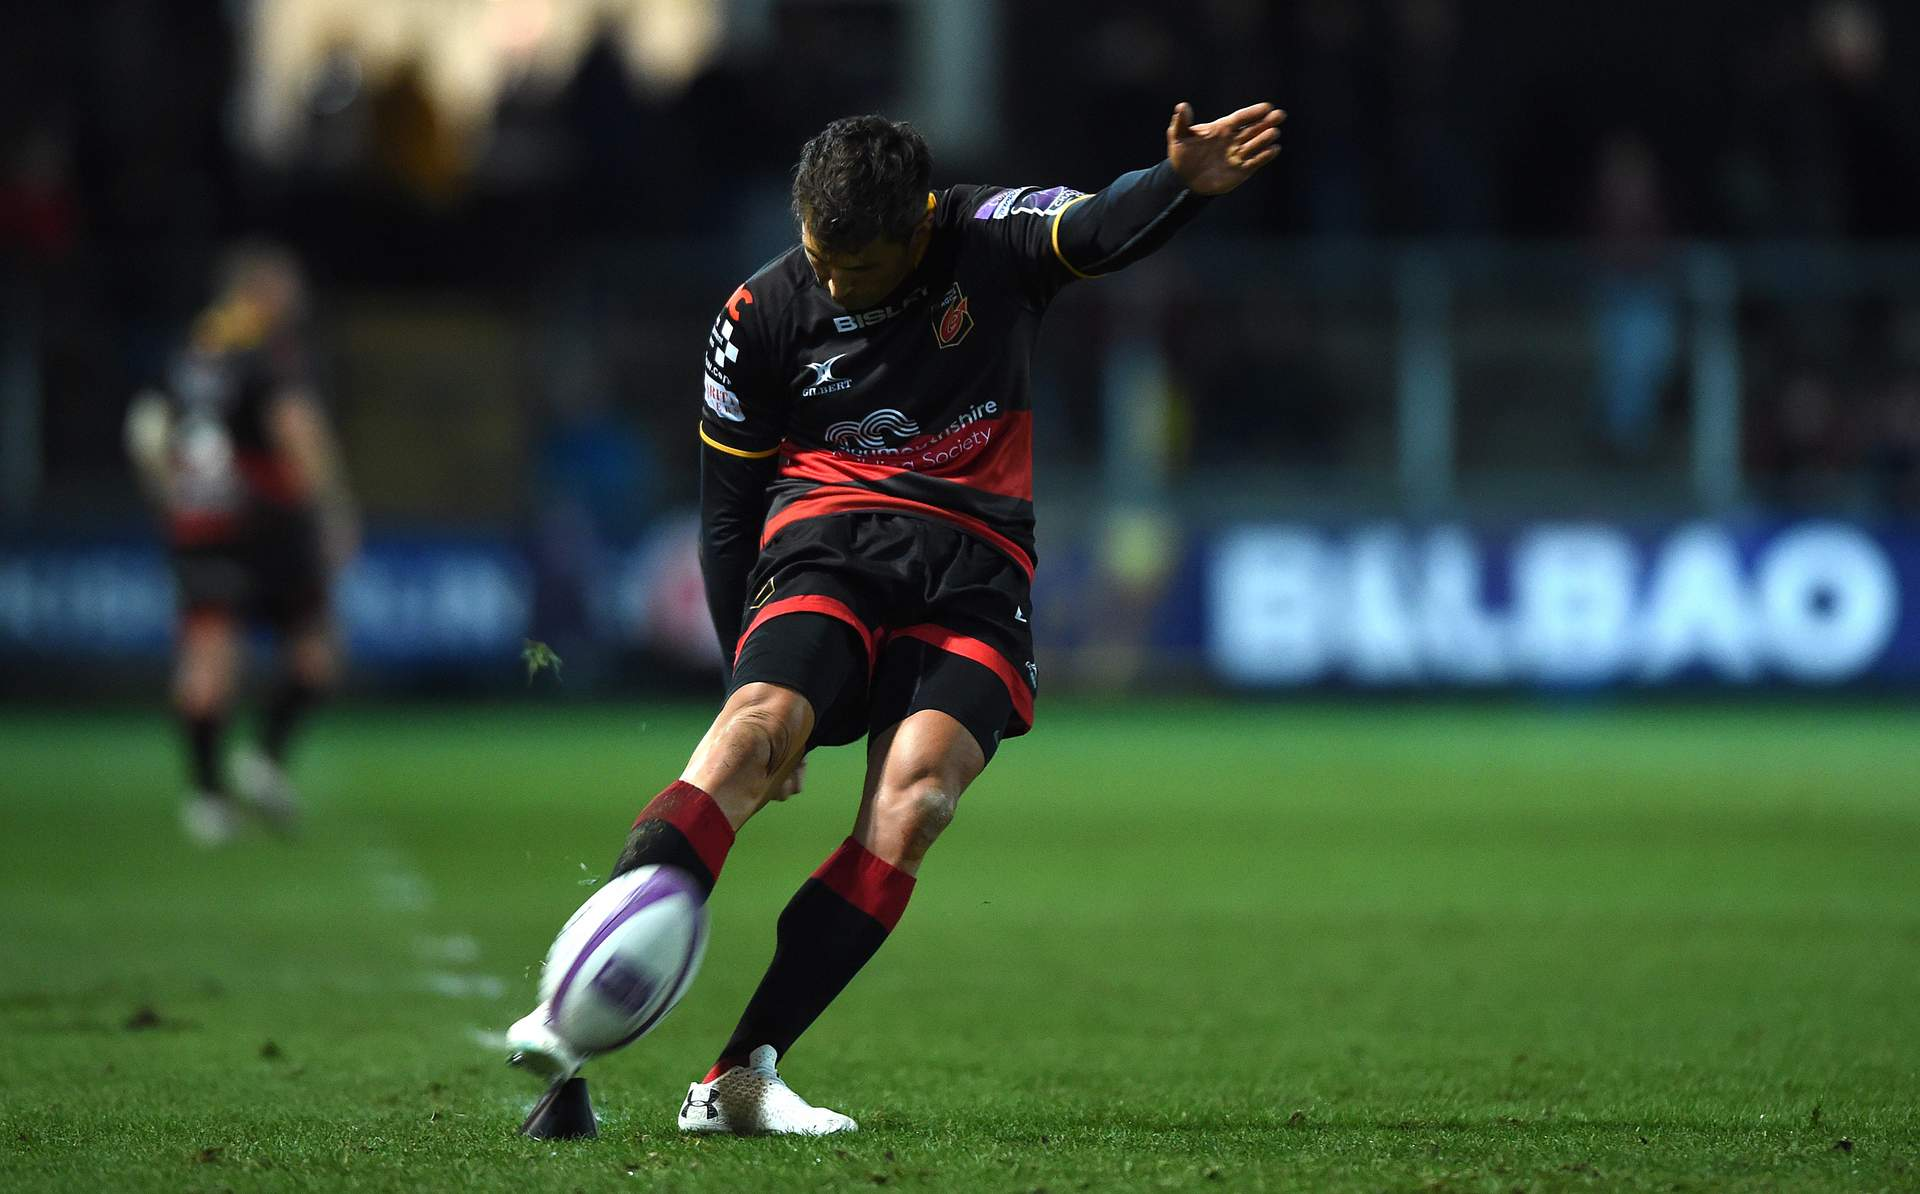 PREVIEW: Dragons won't give up on European dream